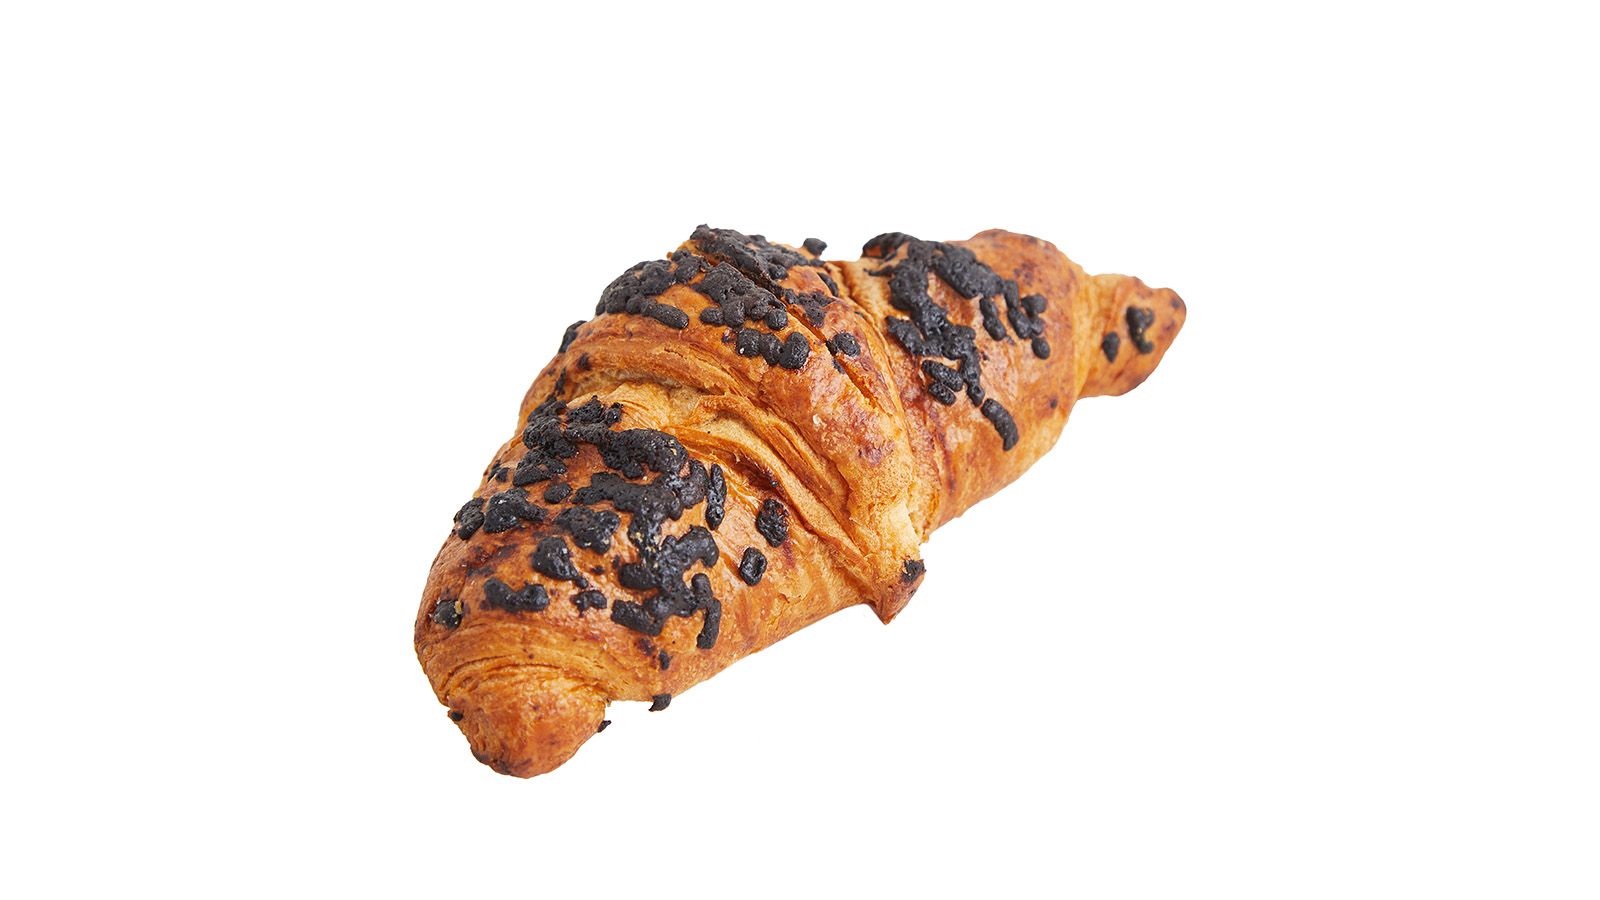 Croissant with nut filling and chocolate